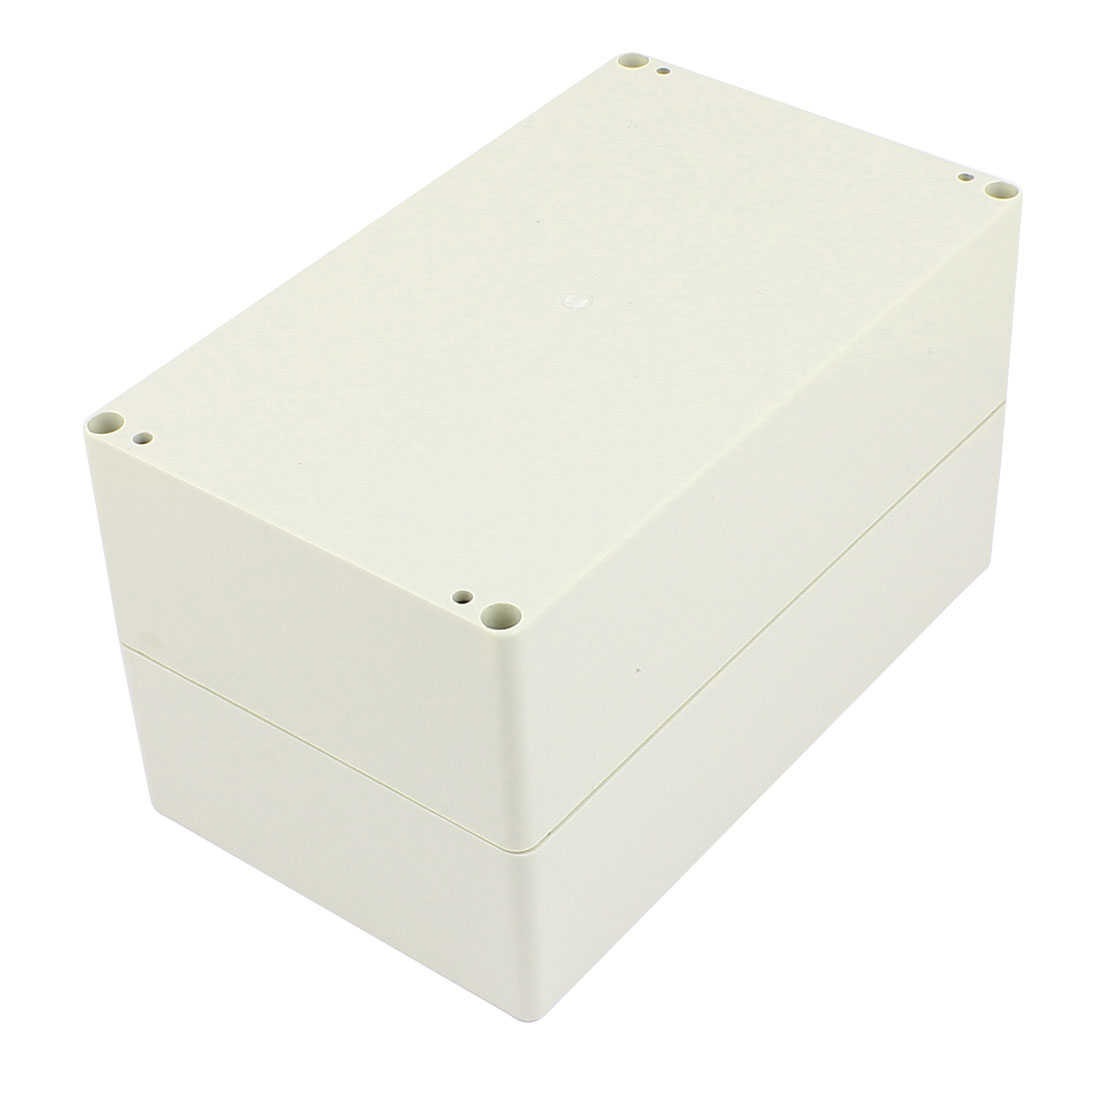 Dustproof IP65 Junction Box Case DIY Terminal Connect Enclosure Adaptable 192mm x 112mm x 105mm